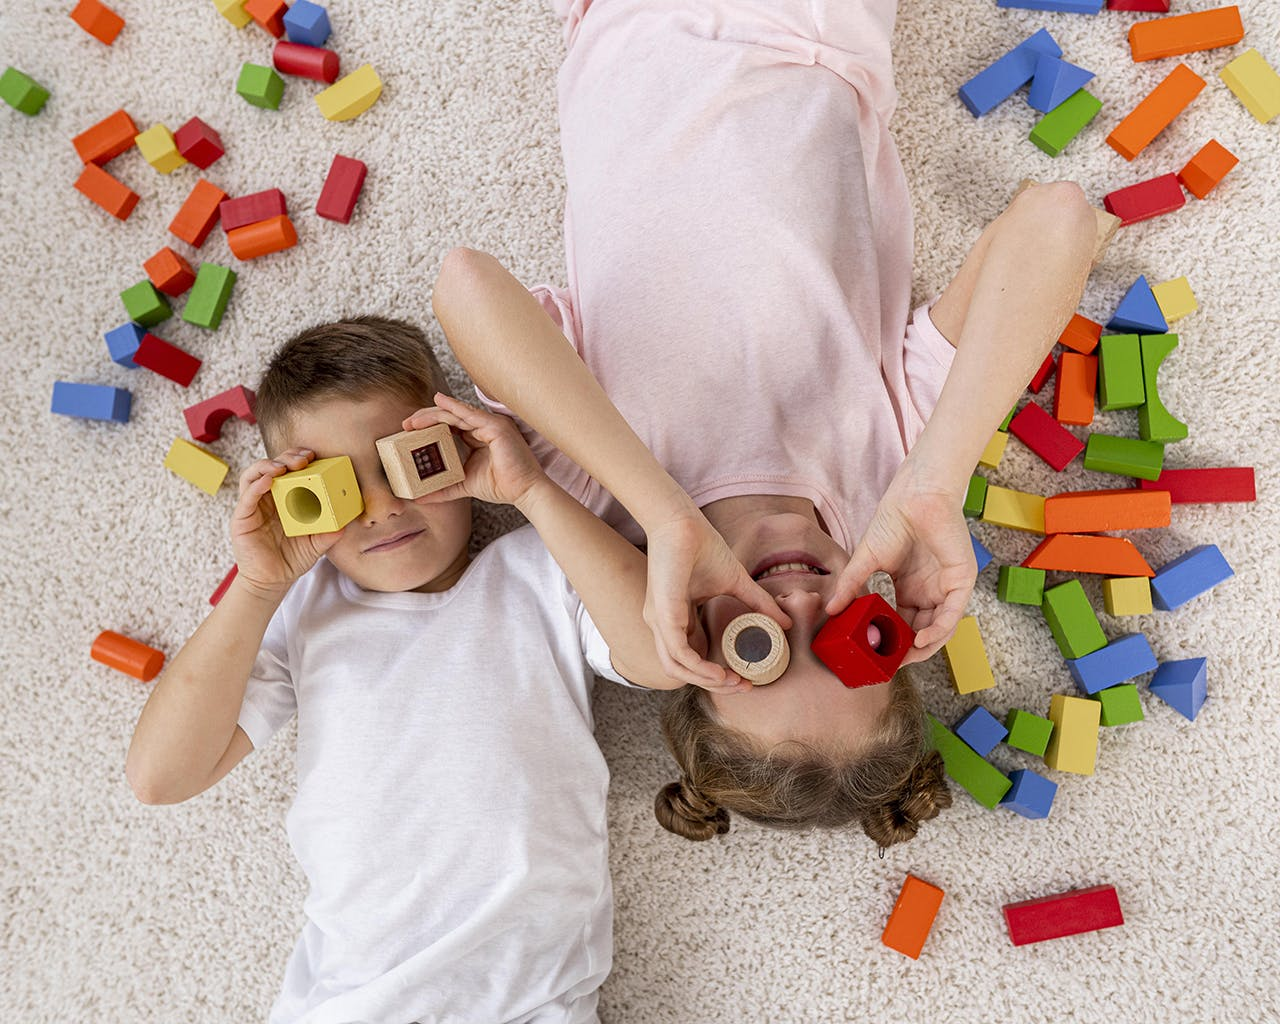 Stay In, Have Fun! 5 Group Games and Activities For Adults And Kids